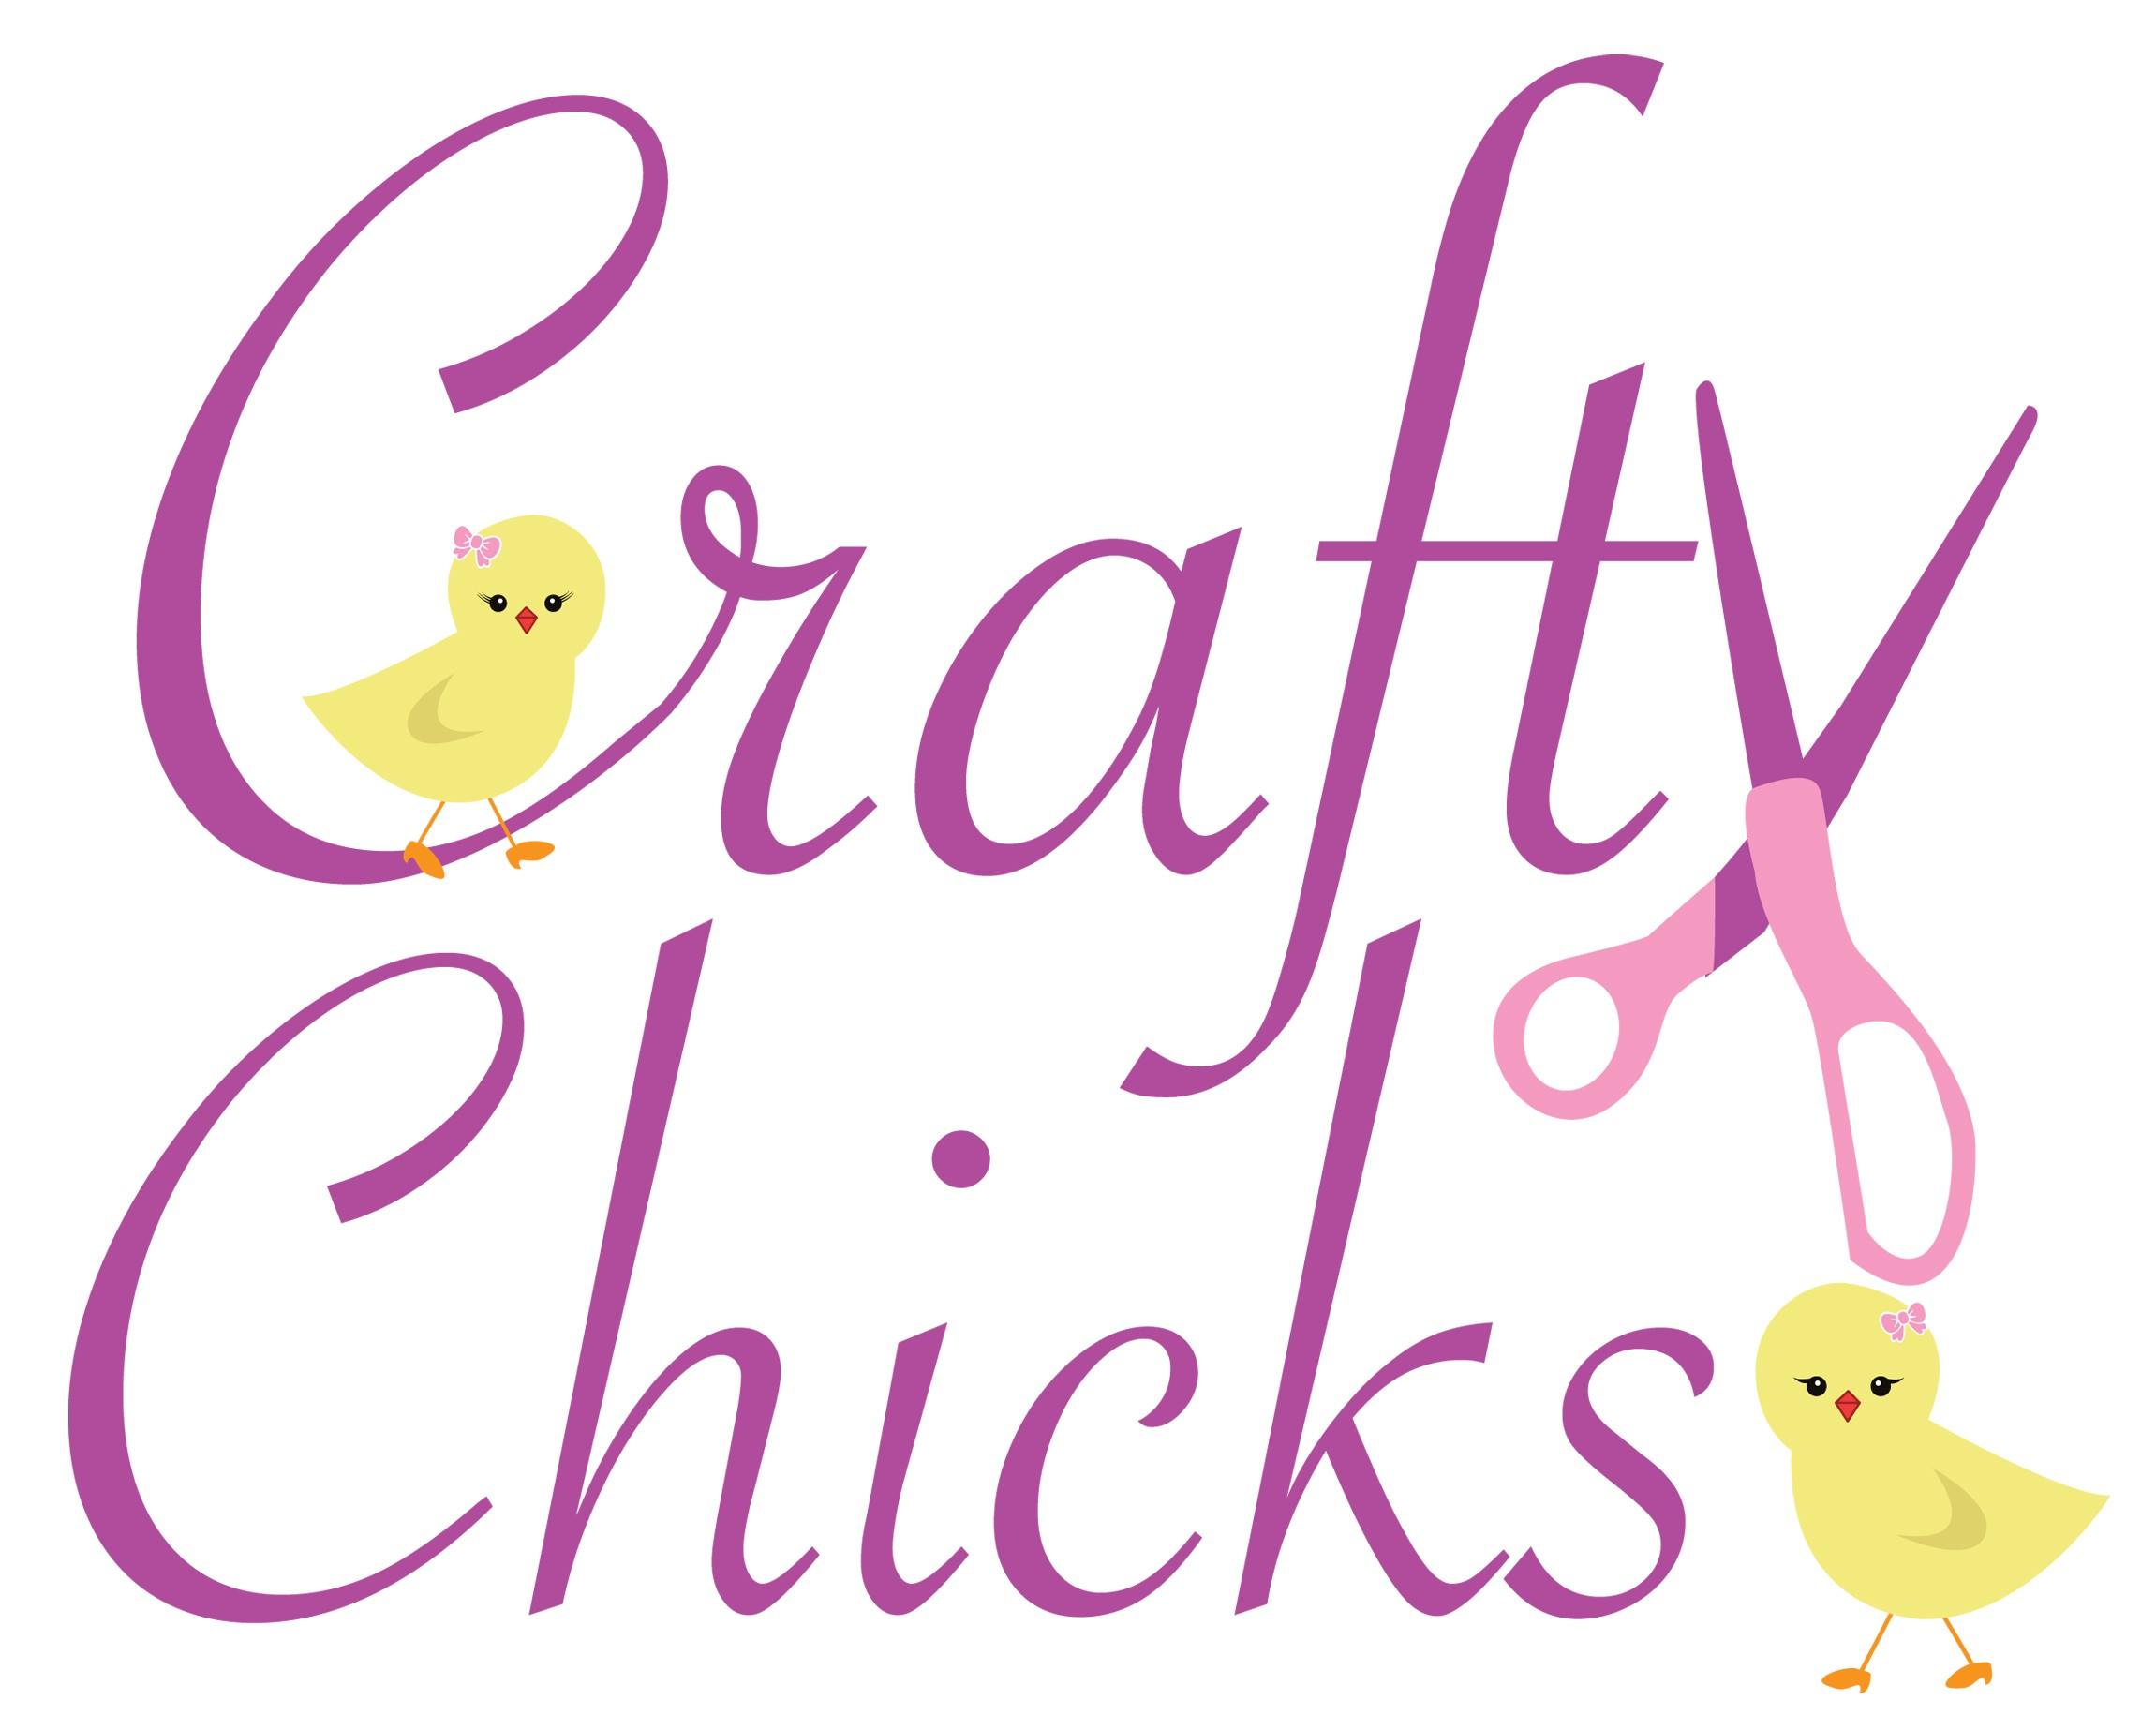 Crafty Chicks LLC